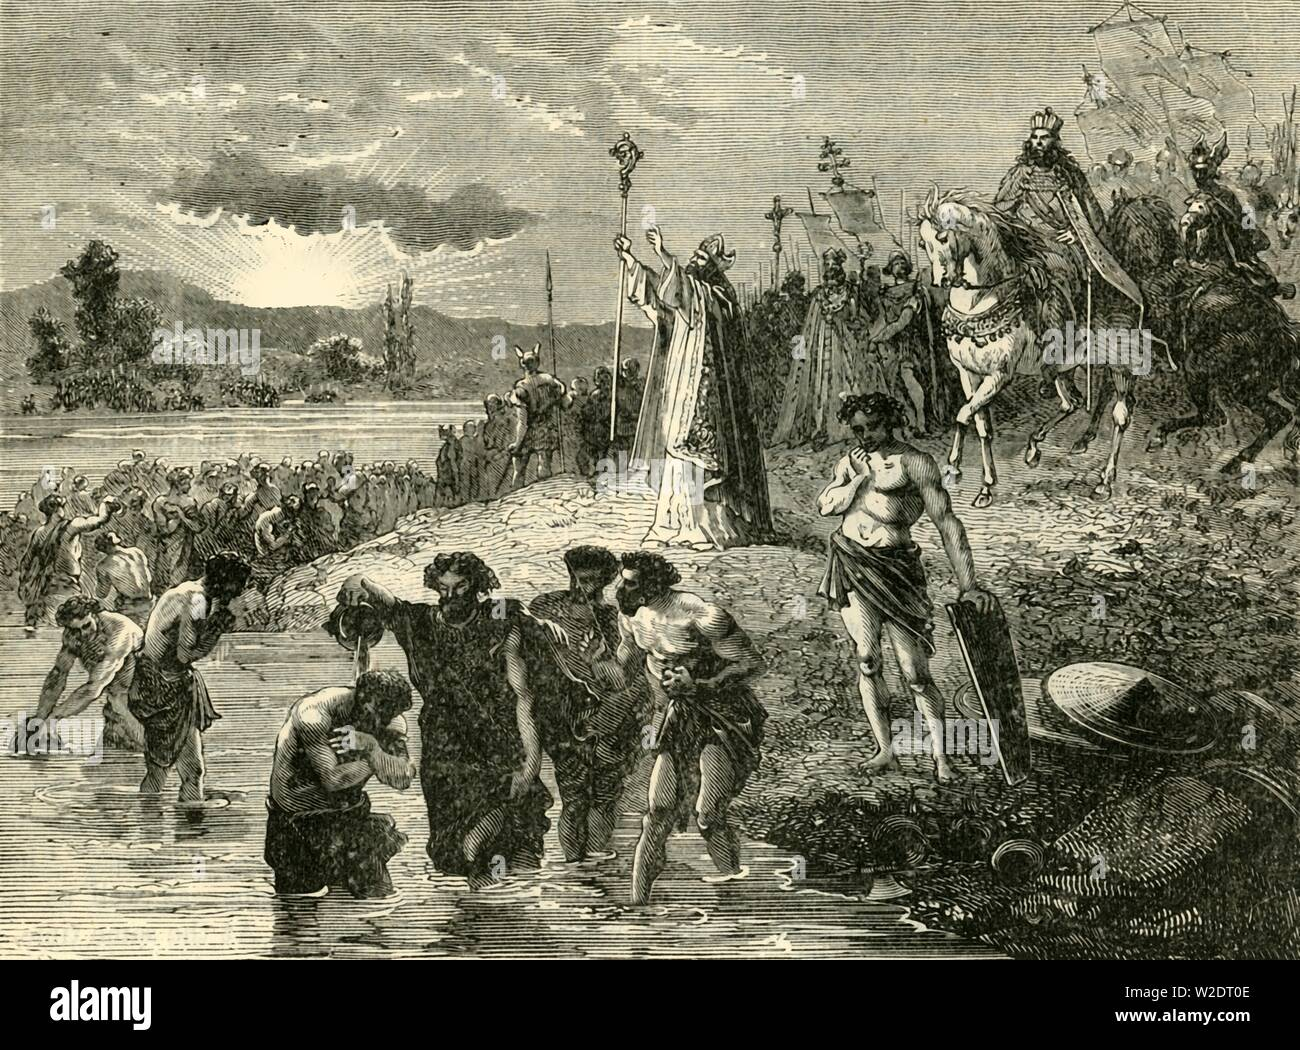 """'Charlemagne Causing the Saxons to be Baptised in the Weser', (782AD), 1890. Charlemagne  (742-814) King of the Franks prescribed death to Saxon pagans who refused to convert to Christianity, 4,500 prisoners were beheaded in the Massacre of Verden. From """"Cassell's Illustrated Universal History, Vol. III - The Middle Ages"""", by Edmund Ollier. [Cassell and Company, Limited, London, Paris and Melbourne, 1890. ] - Stock Image"""